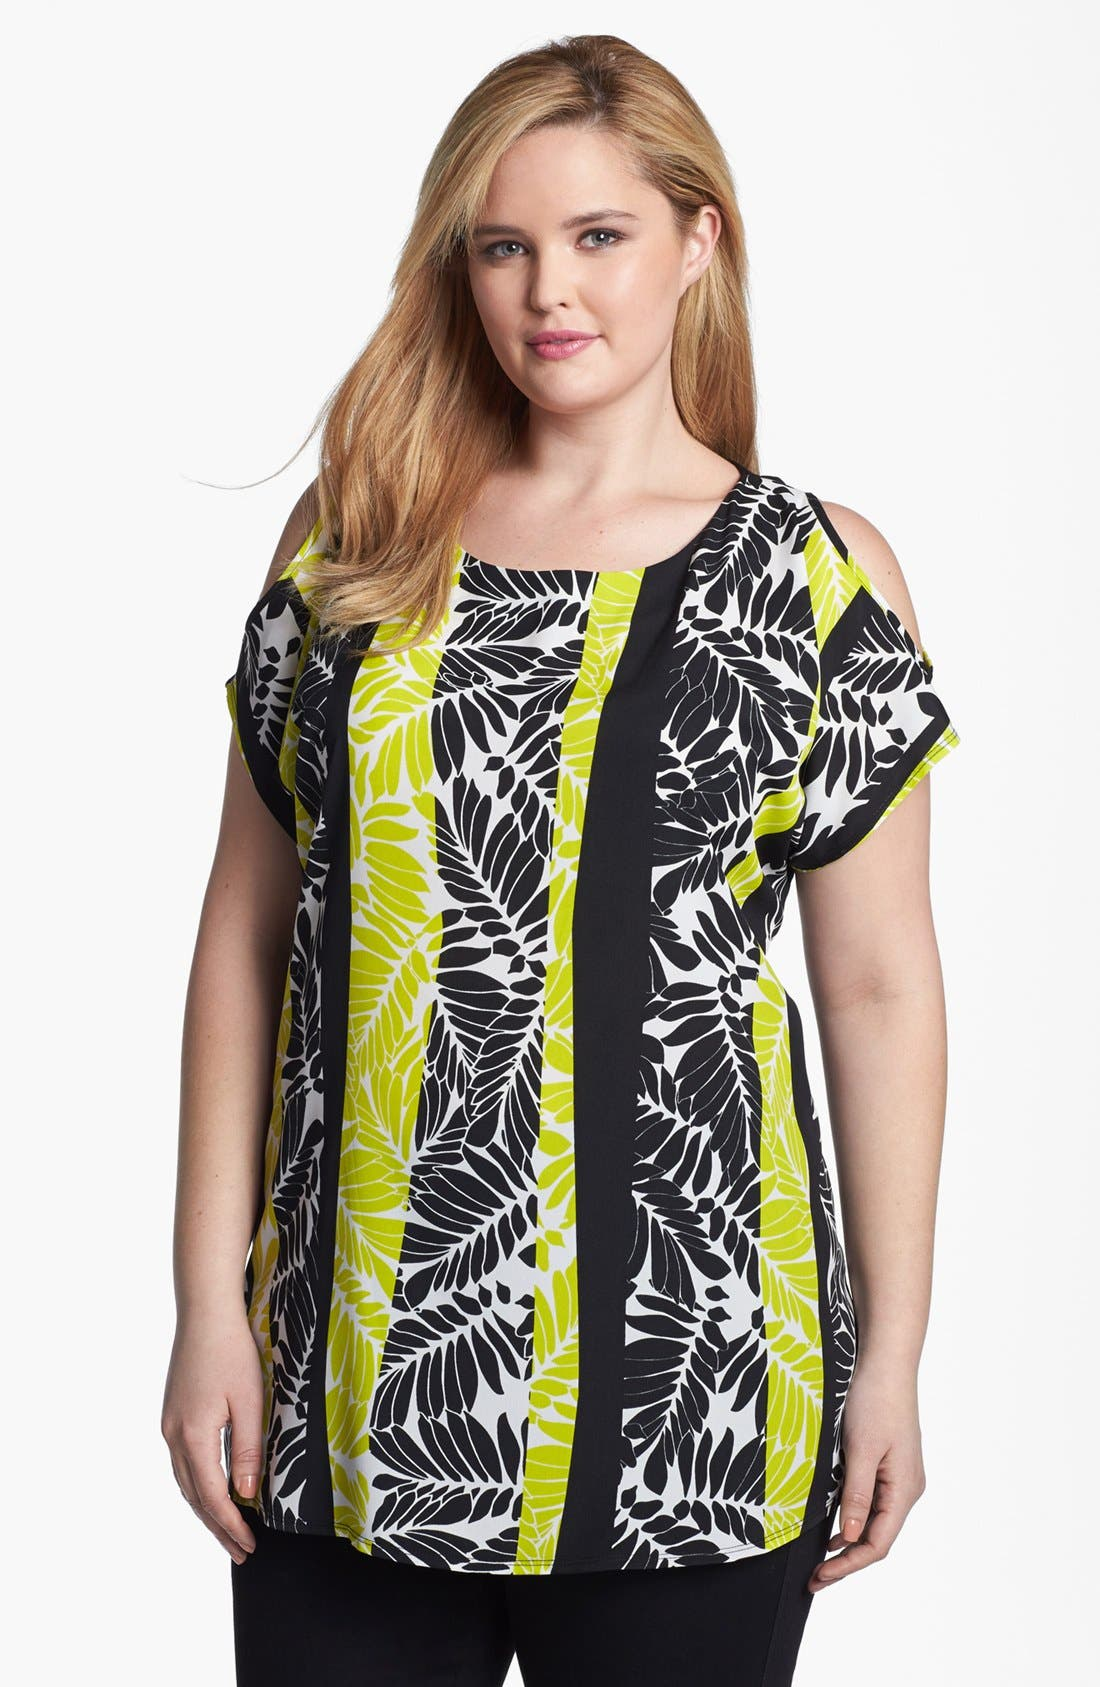 Alternate Image 1 Selected - Evans Mixed Media Cold Shoulder Top (Plus Size)